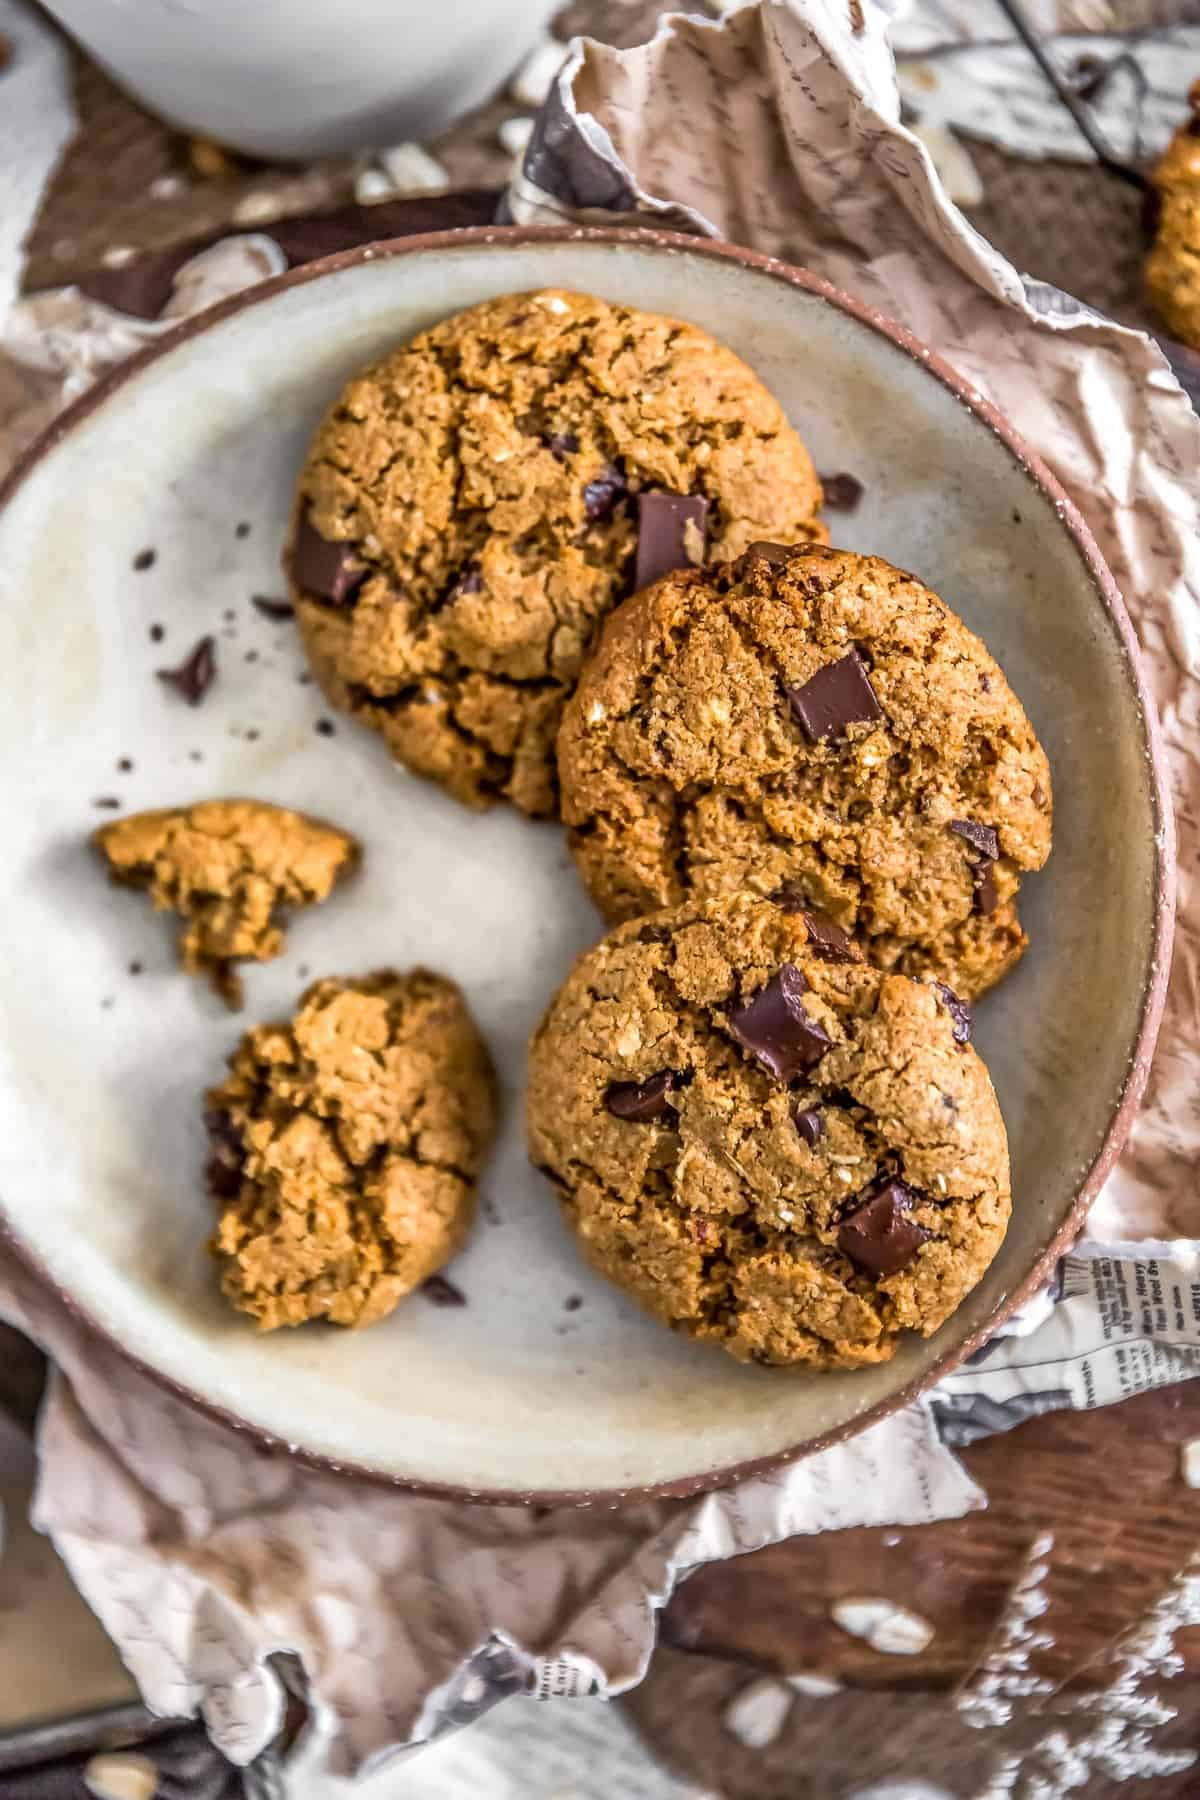 Plate of Healthy Vegan Chocolate Chip Cookies